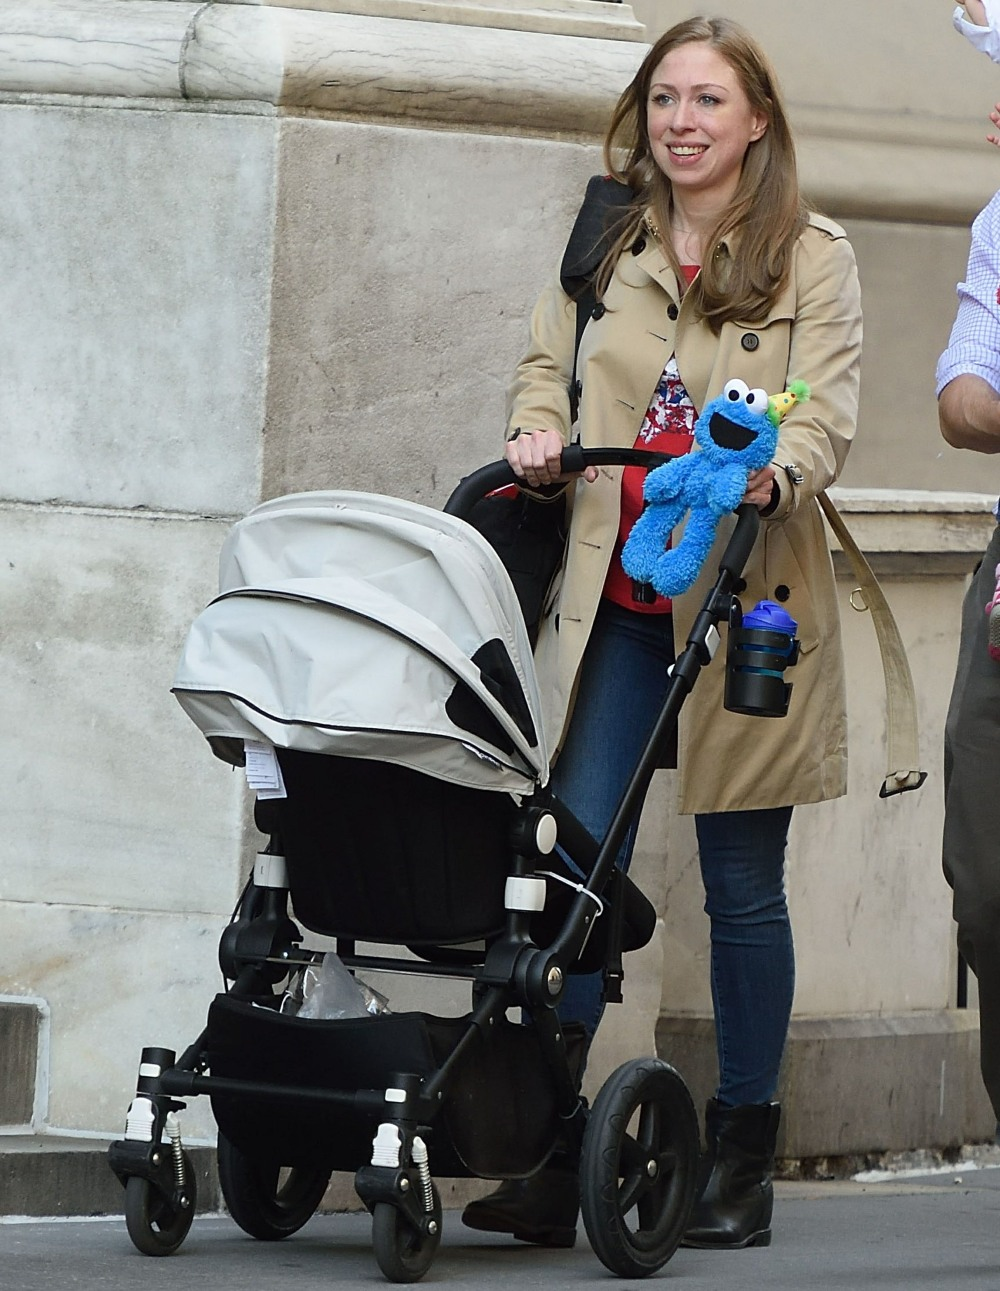 Baby on board! Chelsea Clinton Is Pregnant With Baby No. 3 **FILE PHOTOS**